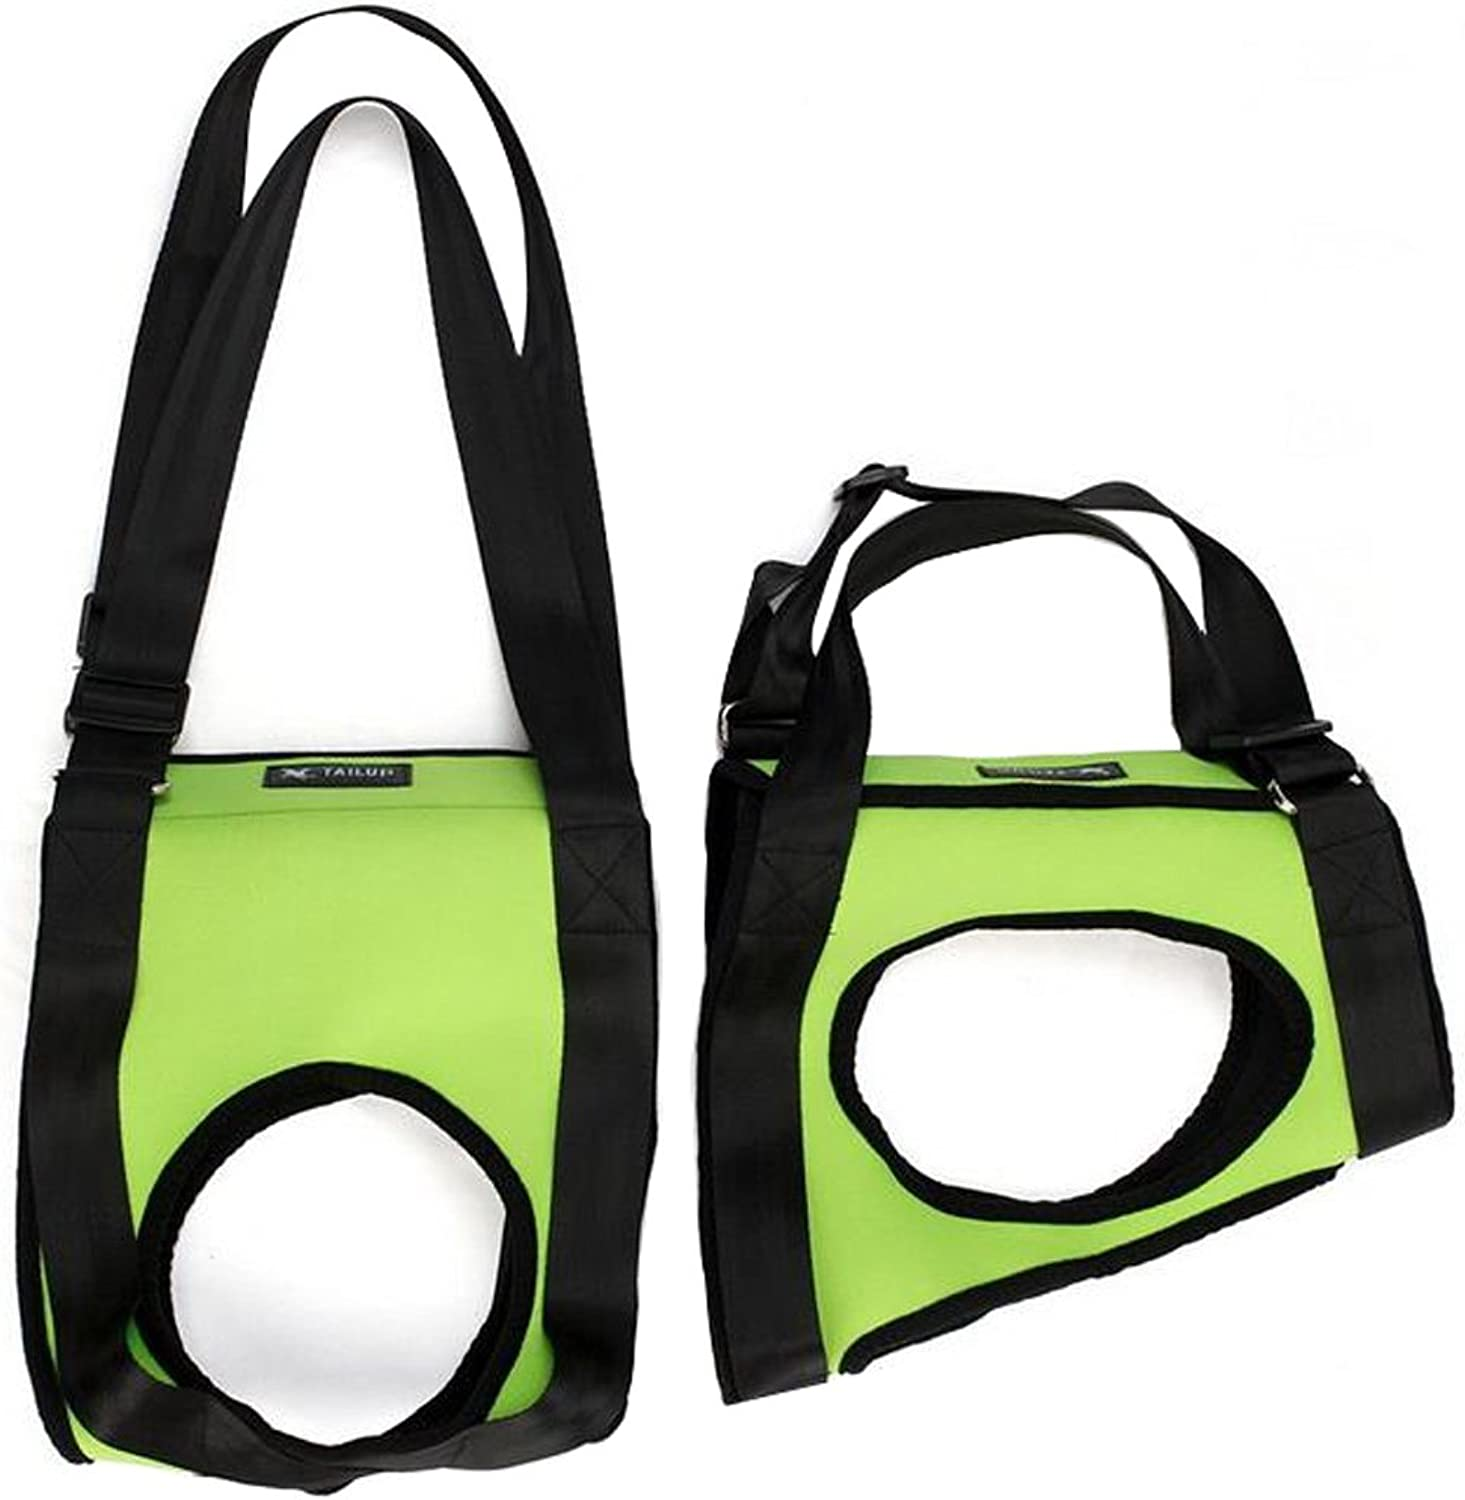 Creation Core Dog Lift Rehabilitation Support Harness Assist for Elderly Disable Joints Surgery(Green,2835Kg)